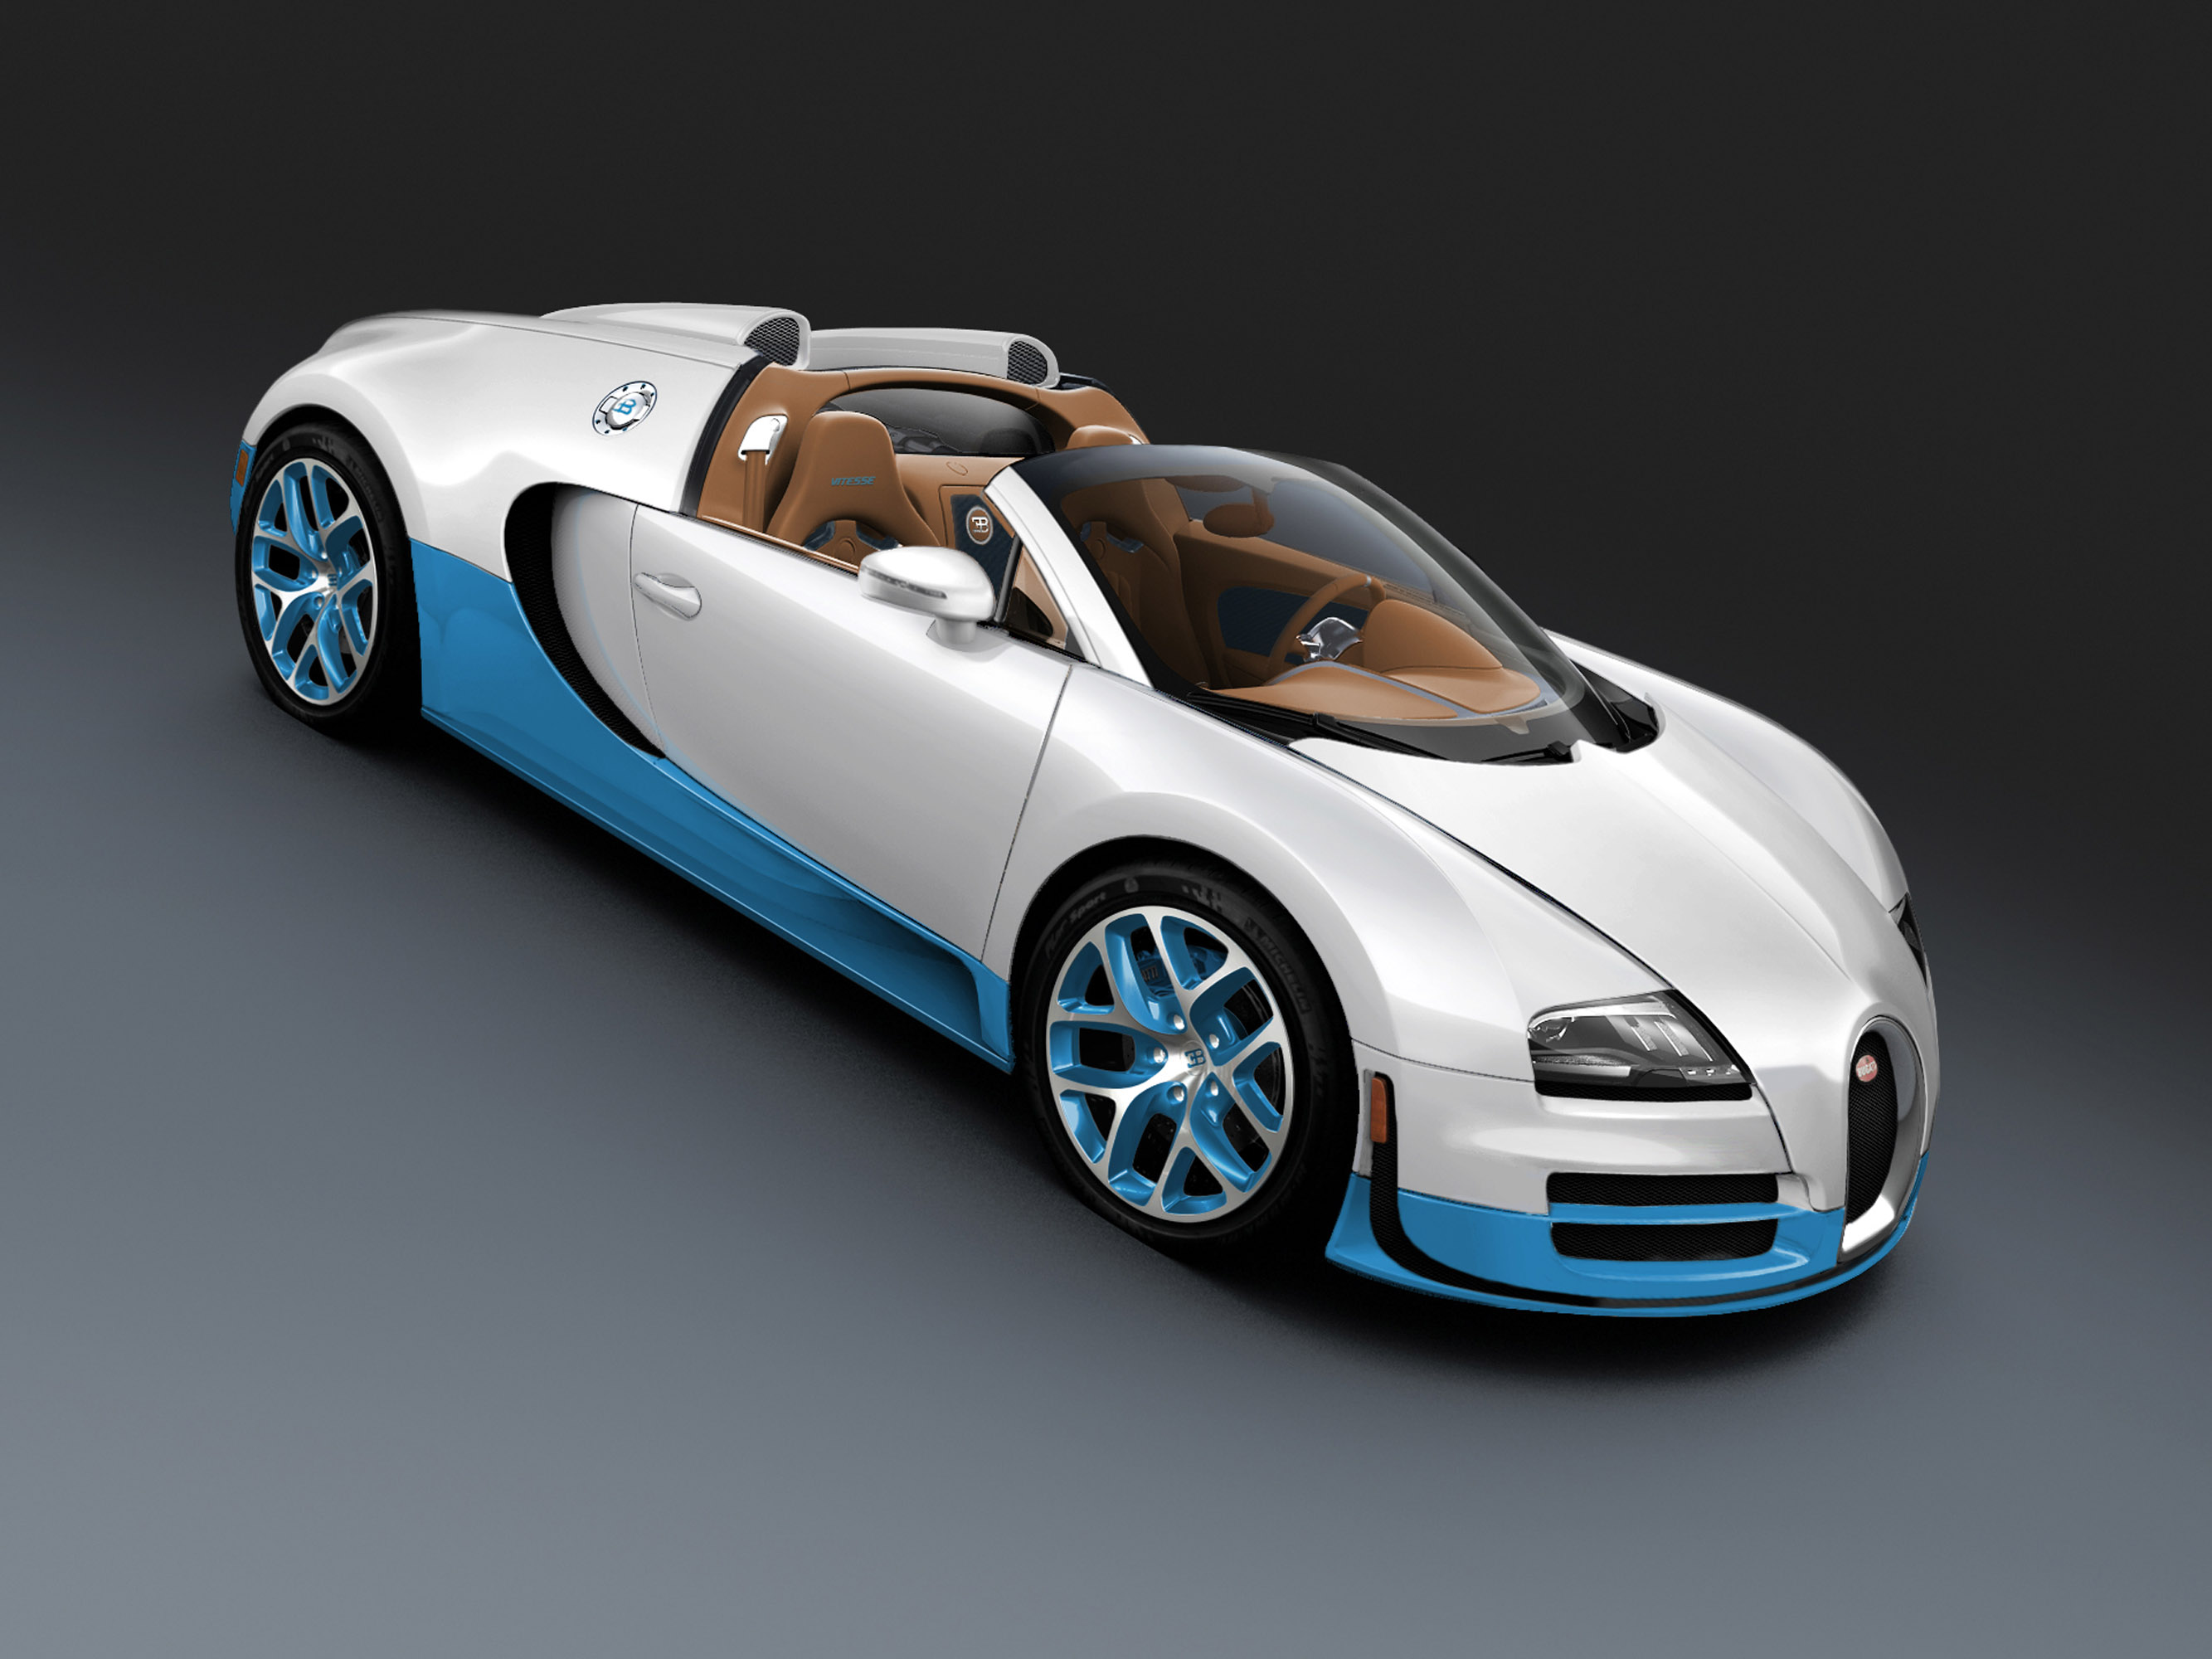 bugatti veyron 16 4 grand sport vitesse debuts at the 2013 qatar motor show. Black Bedroom Furniture Sets. Home Design Ideas